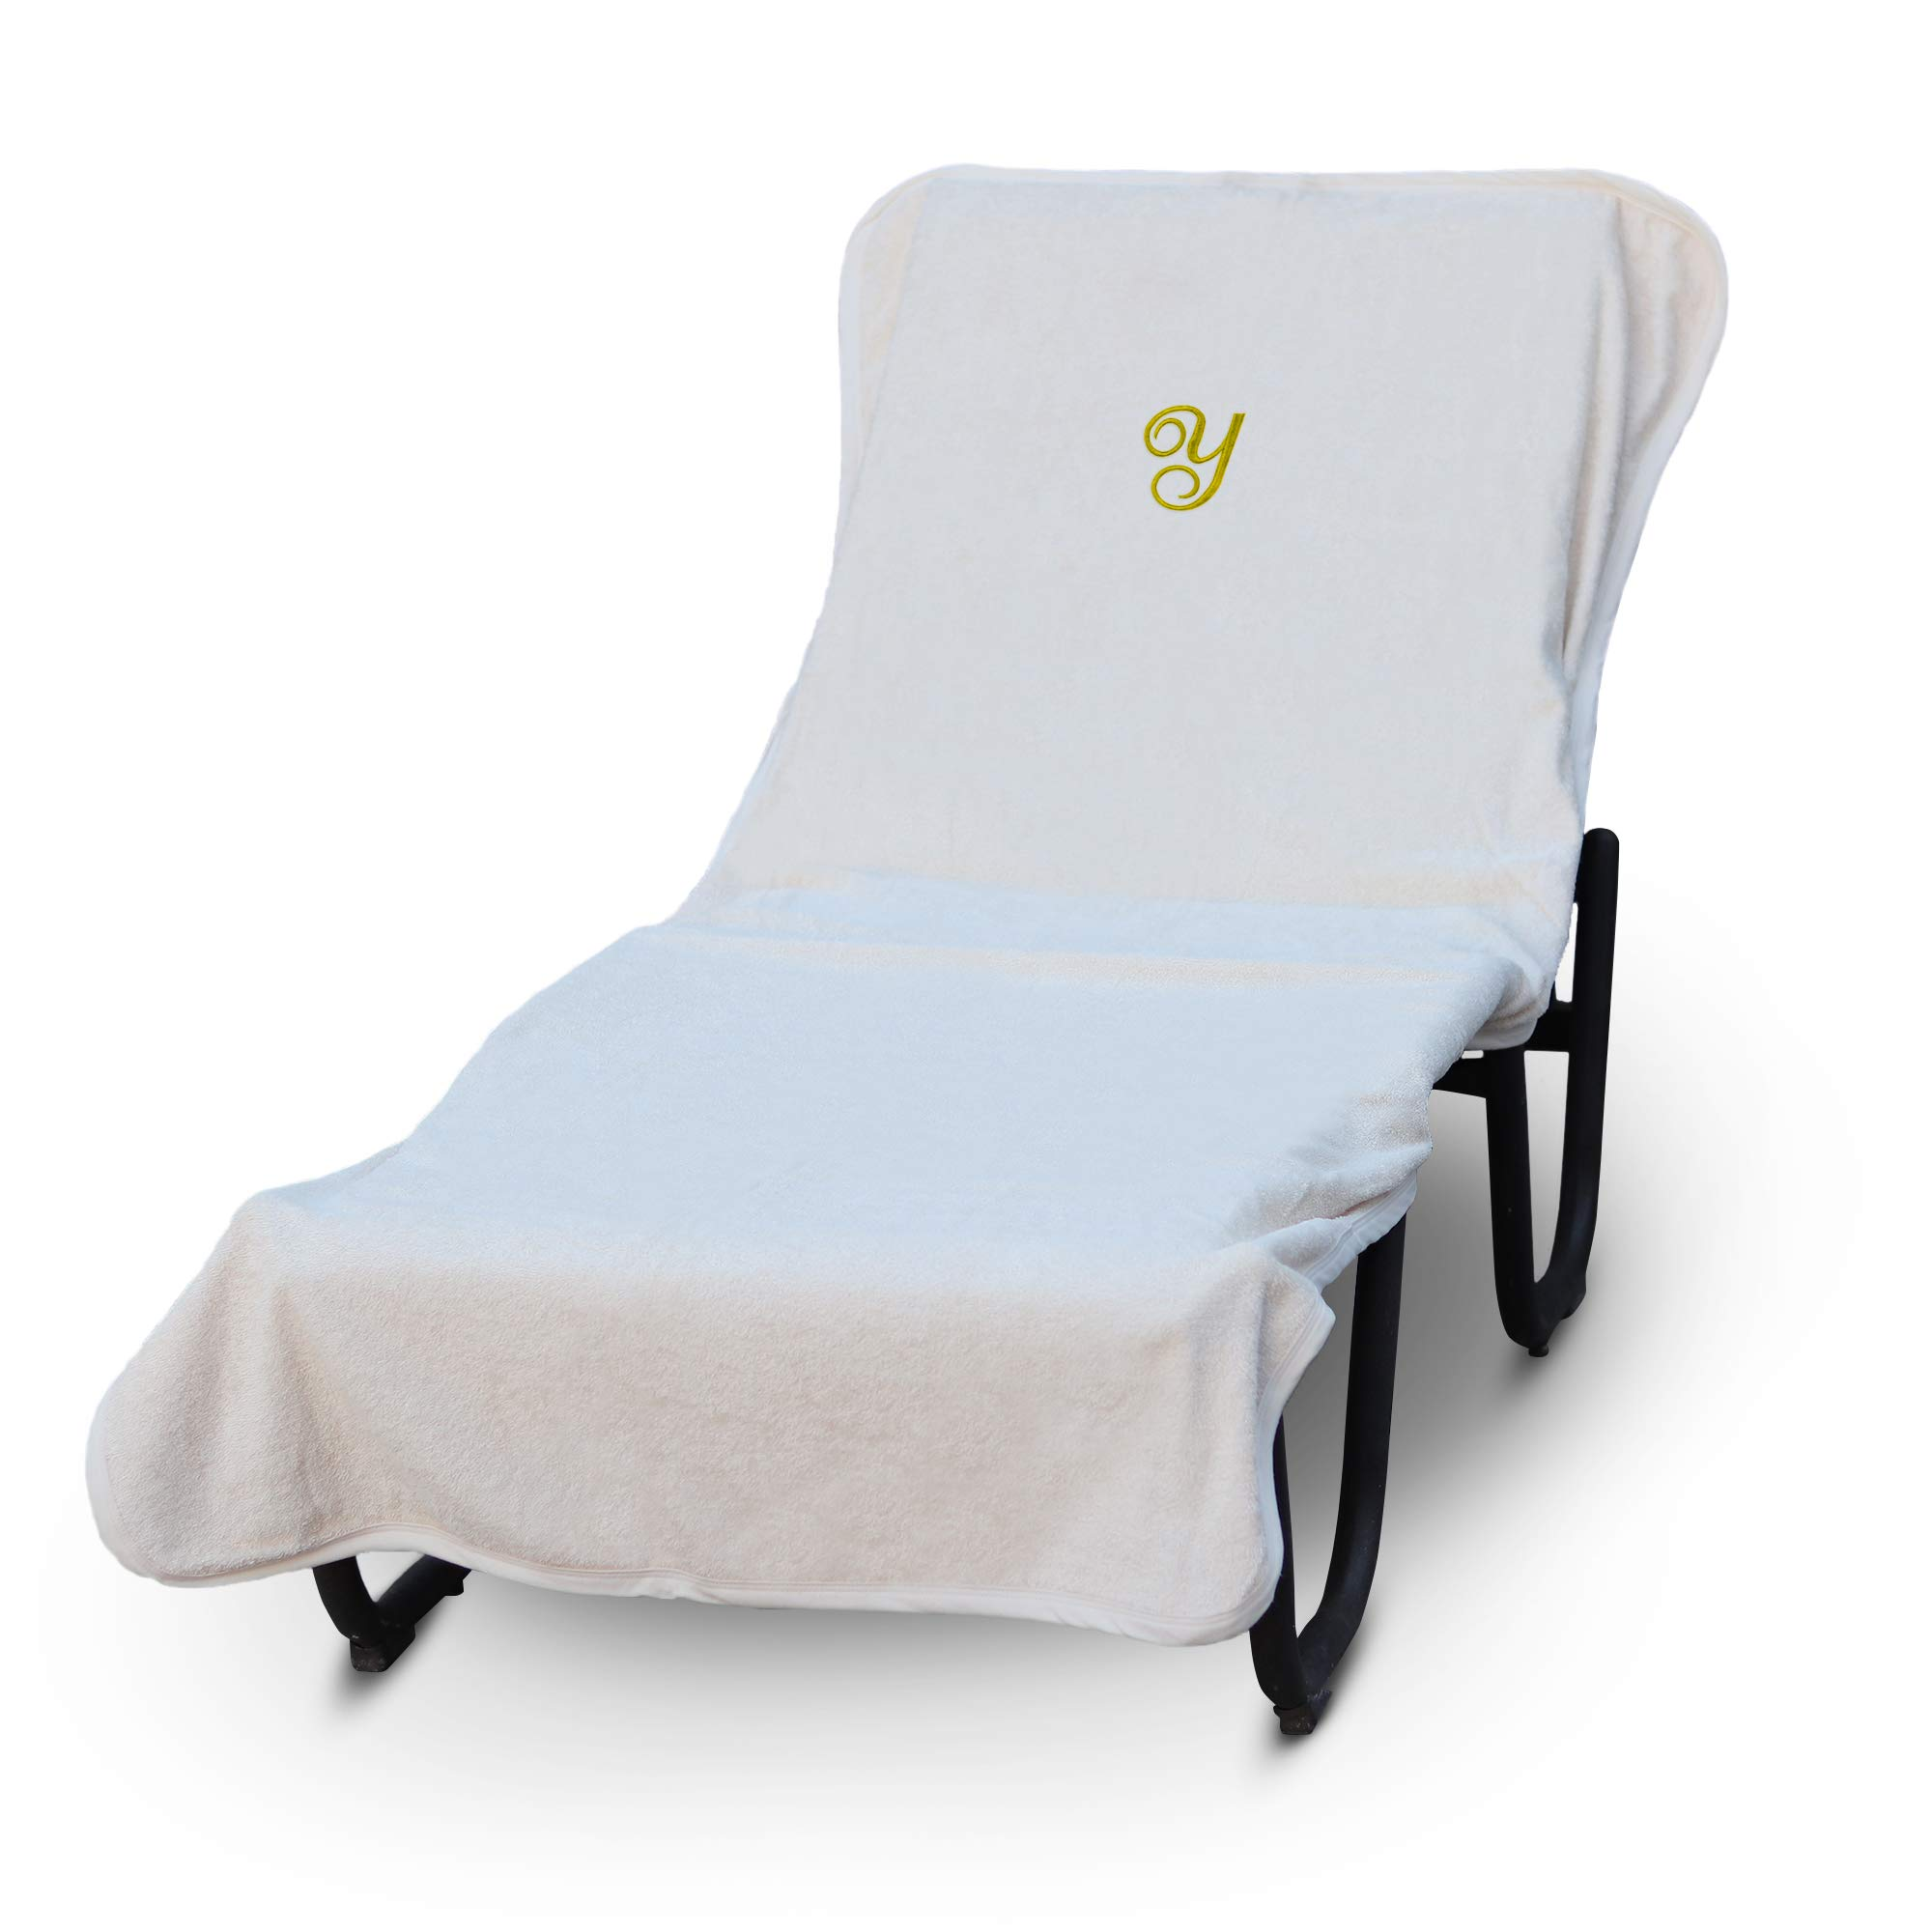 Luxury Hotel & Spa Monogrammed Pool Chaise Lounge Cover, Gold Embroidered Towel - Extra Absorbent 100% Turkish Cotton- Soft Terry Finish - Hotel-Style, Standard Size - Script Y White